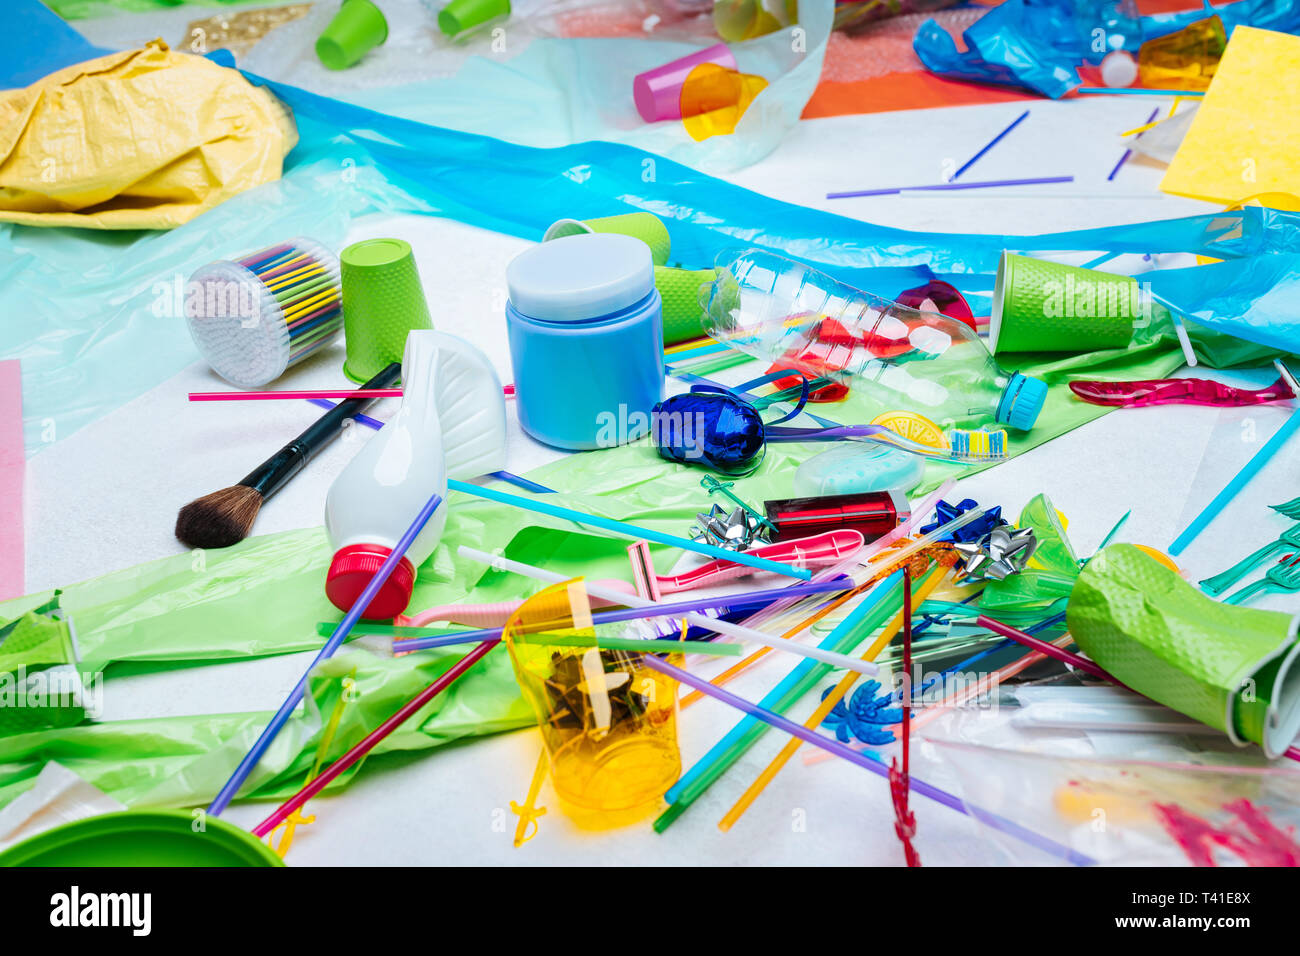 Polluting nature. Different colorful plastic items harming and polluting nature lying on the floor - Stock Image